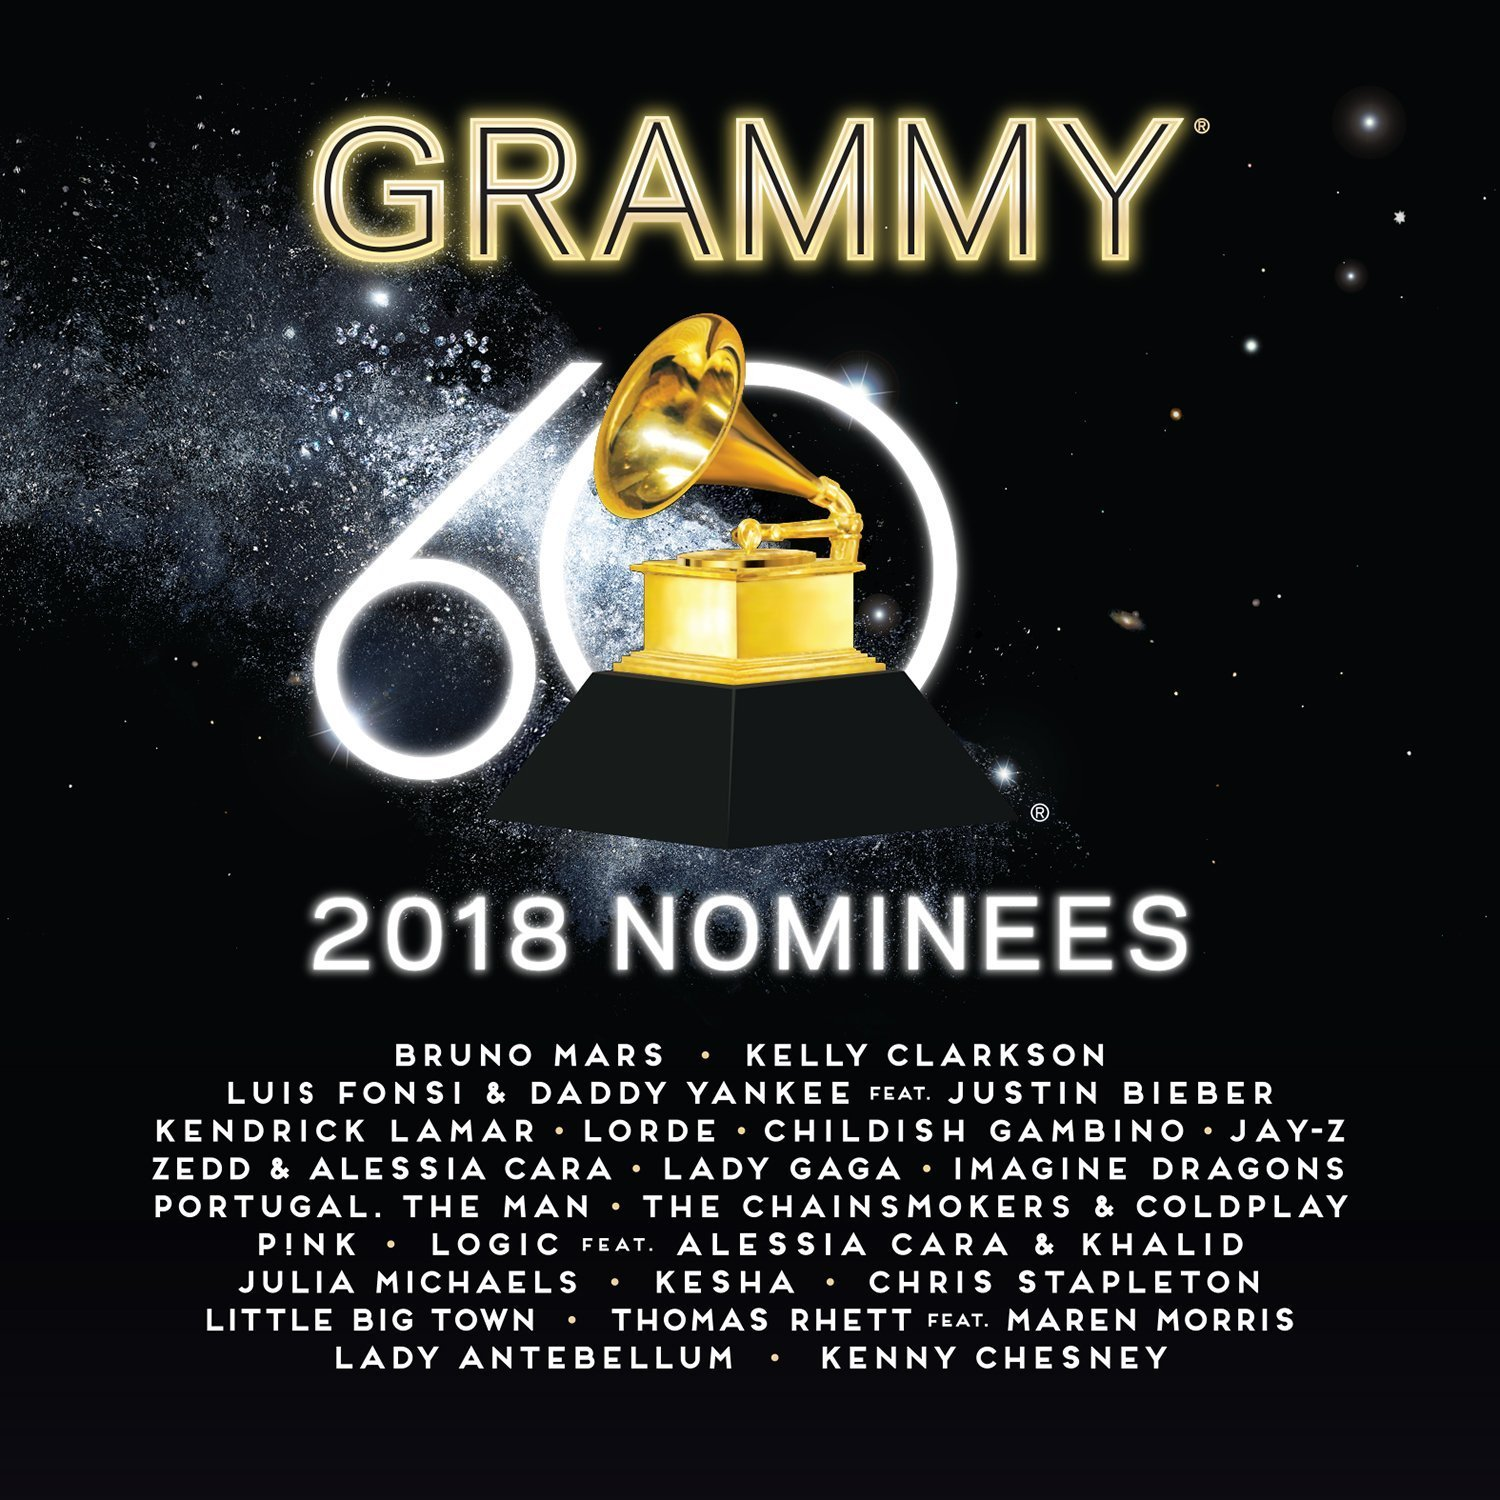 2018 Grammy Nominees by Various Artists image